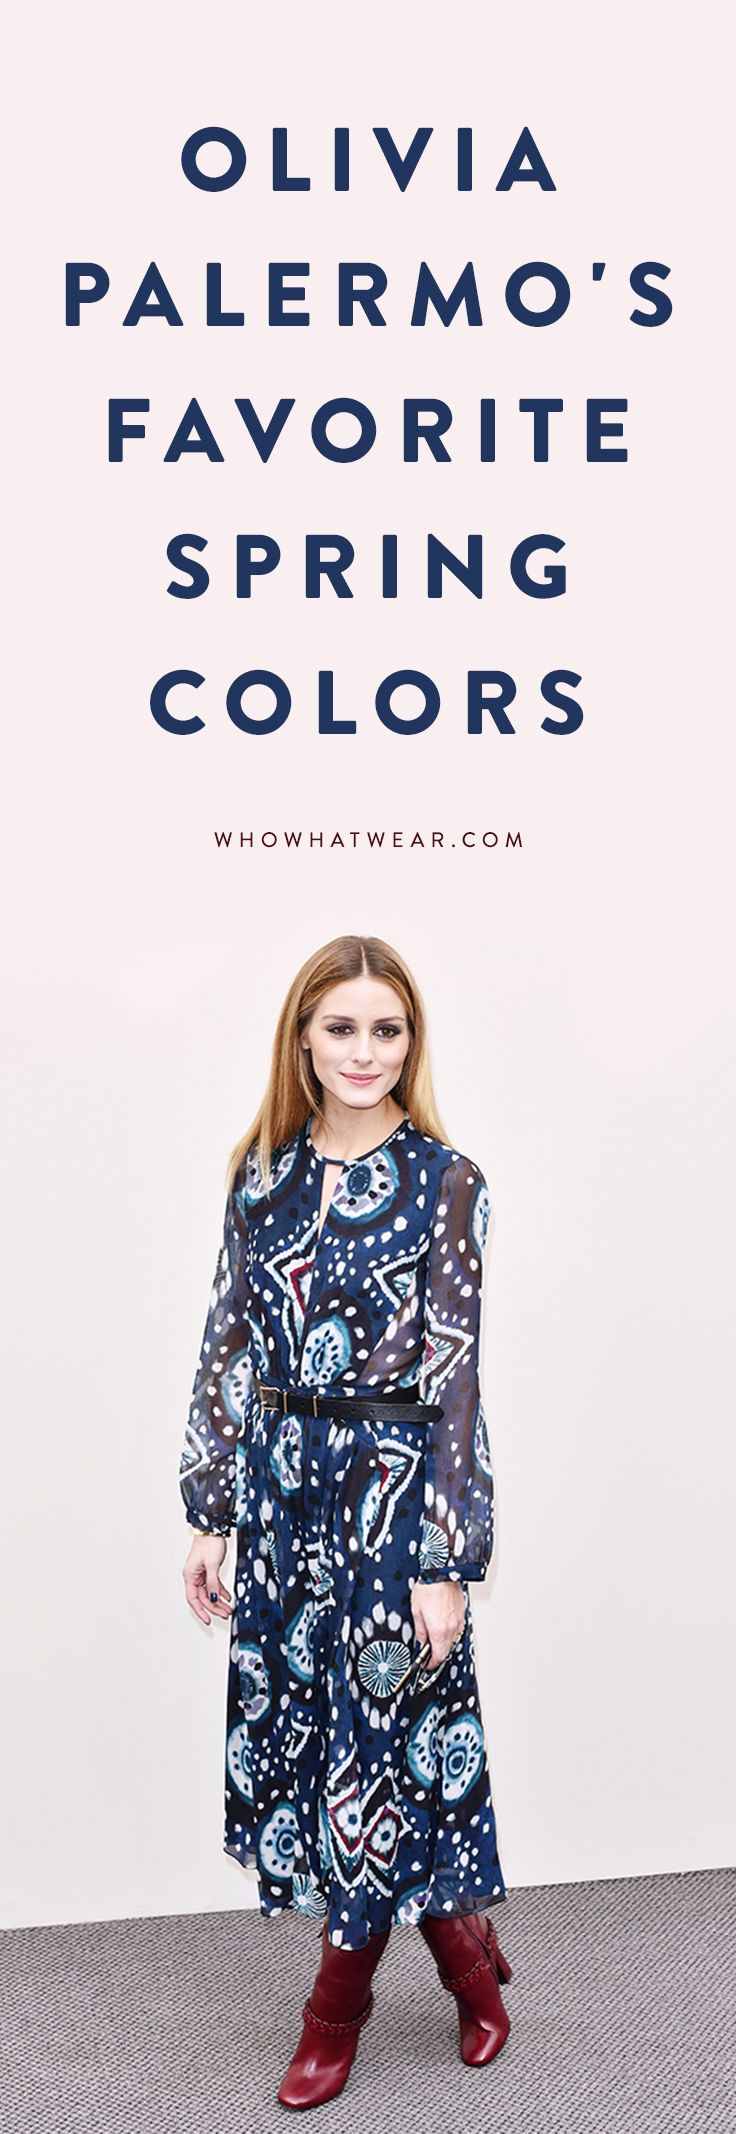 What colors to wear this spring, according to Olivia Palermo.